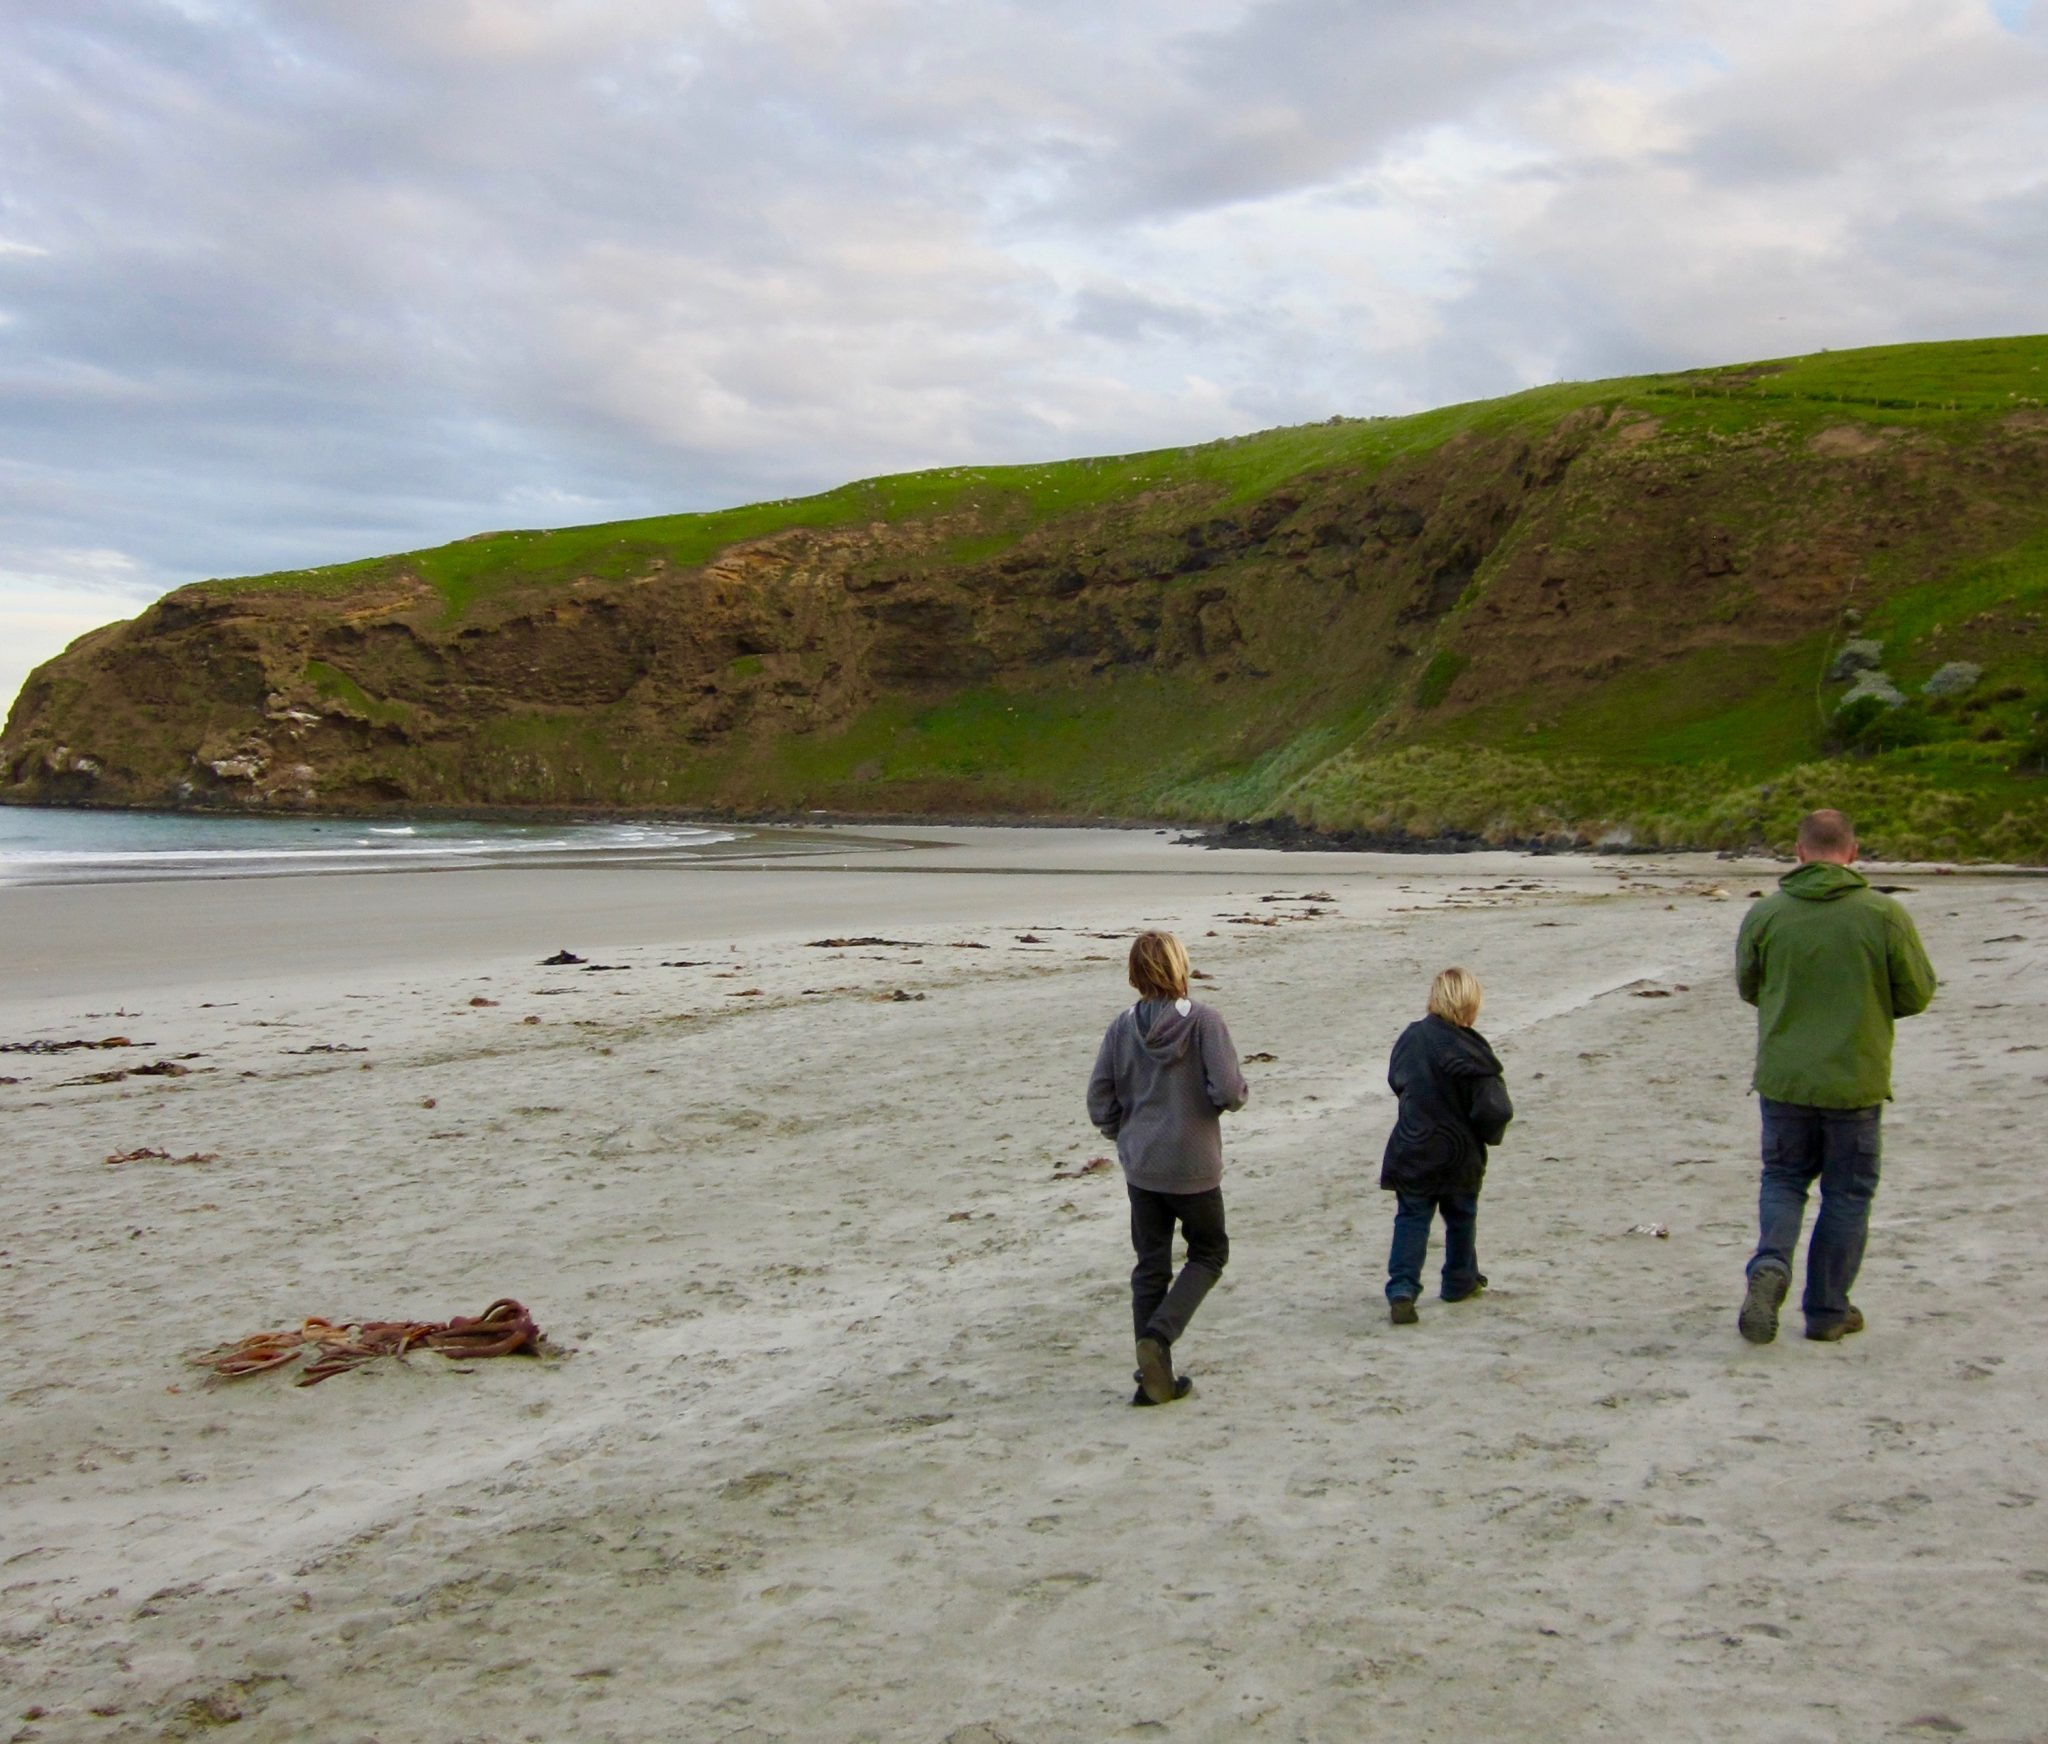 walking on the beach on the otago peninsula